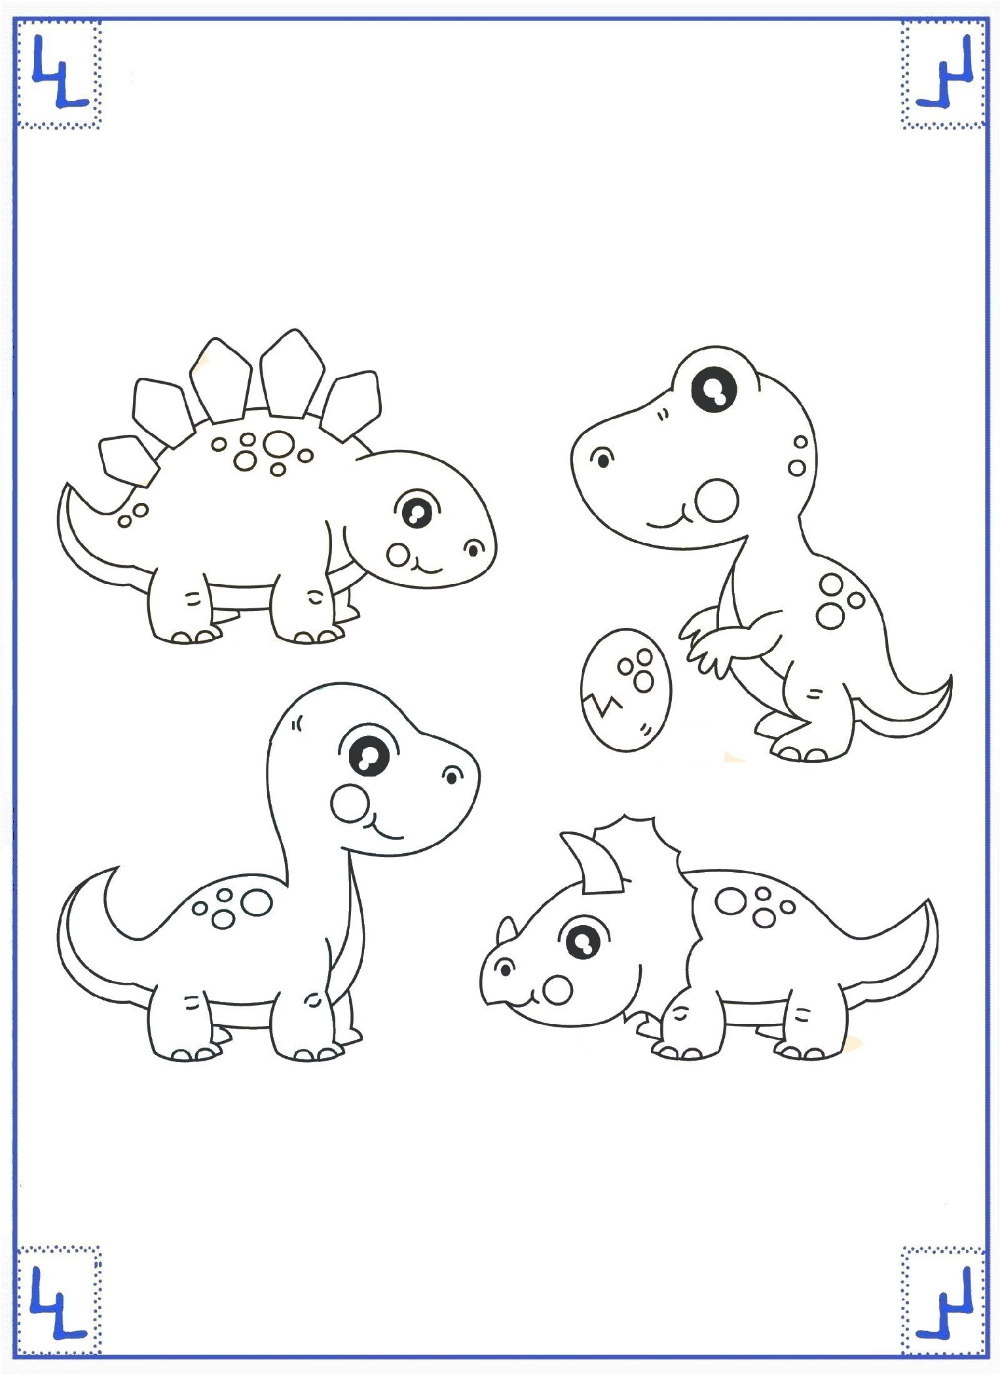 Baby Dinosaur Coloring Pages Printable Shelter Dinosaur Coloring Pages Preschool Coloring Pages Dinosaur Coloring